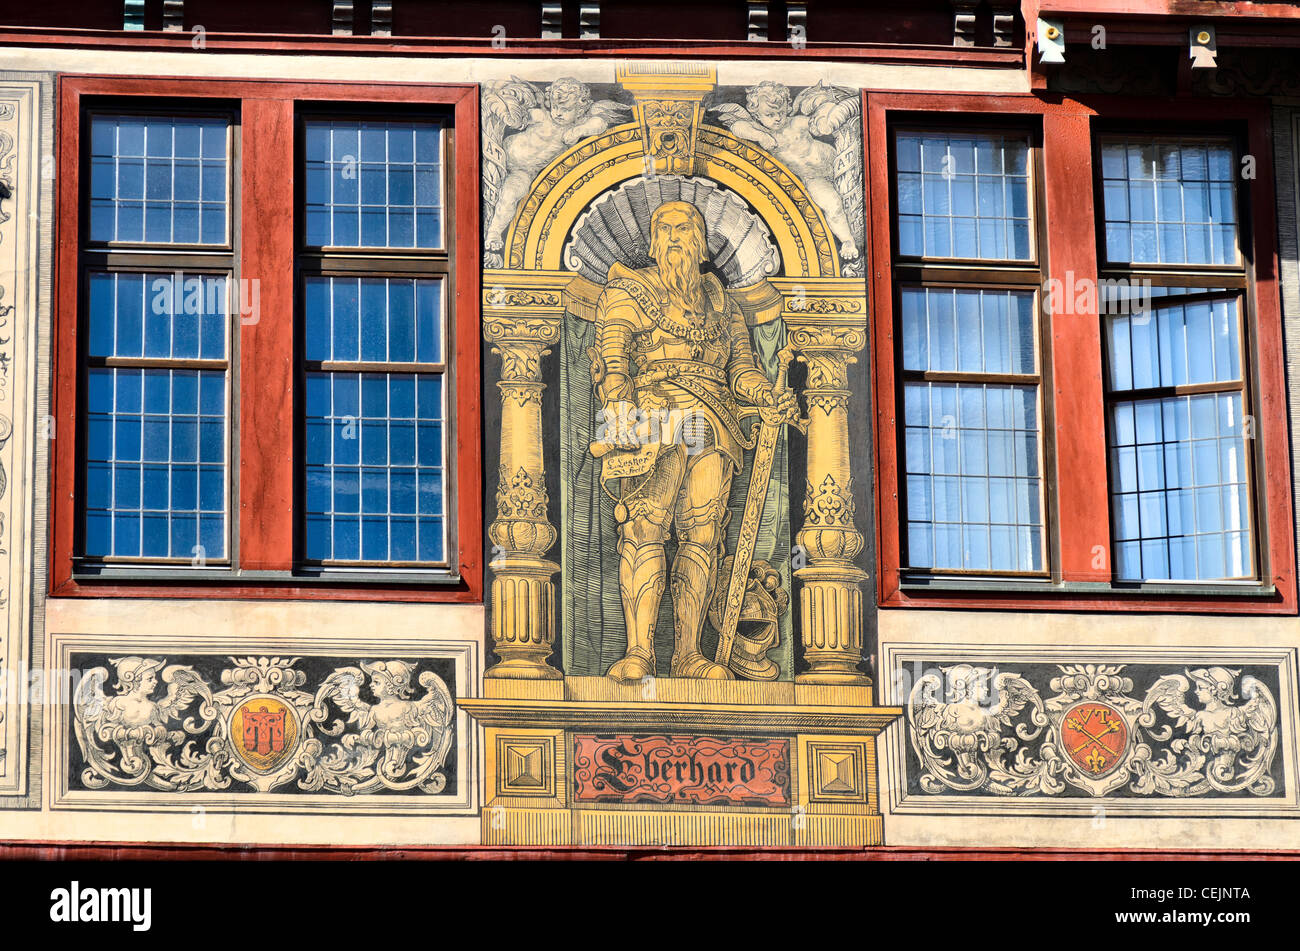 Painted Image of Eberhard I Duke of Württemberg on facade of the town hall of Tübingen, 'Portraet - Stock Image